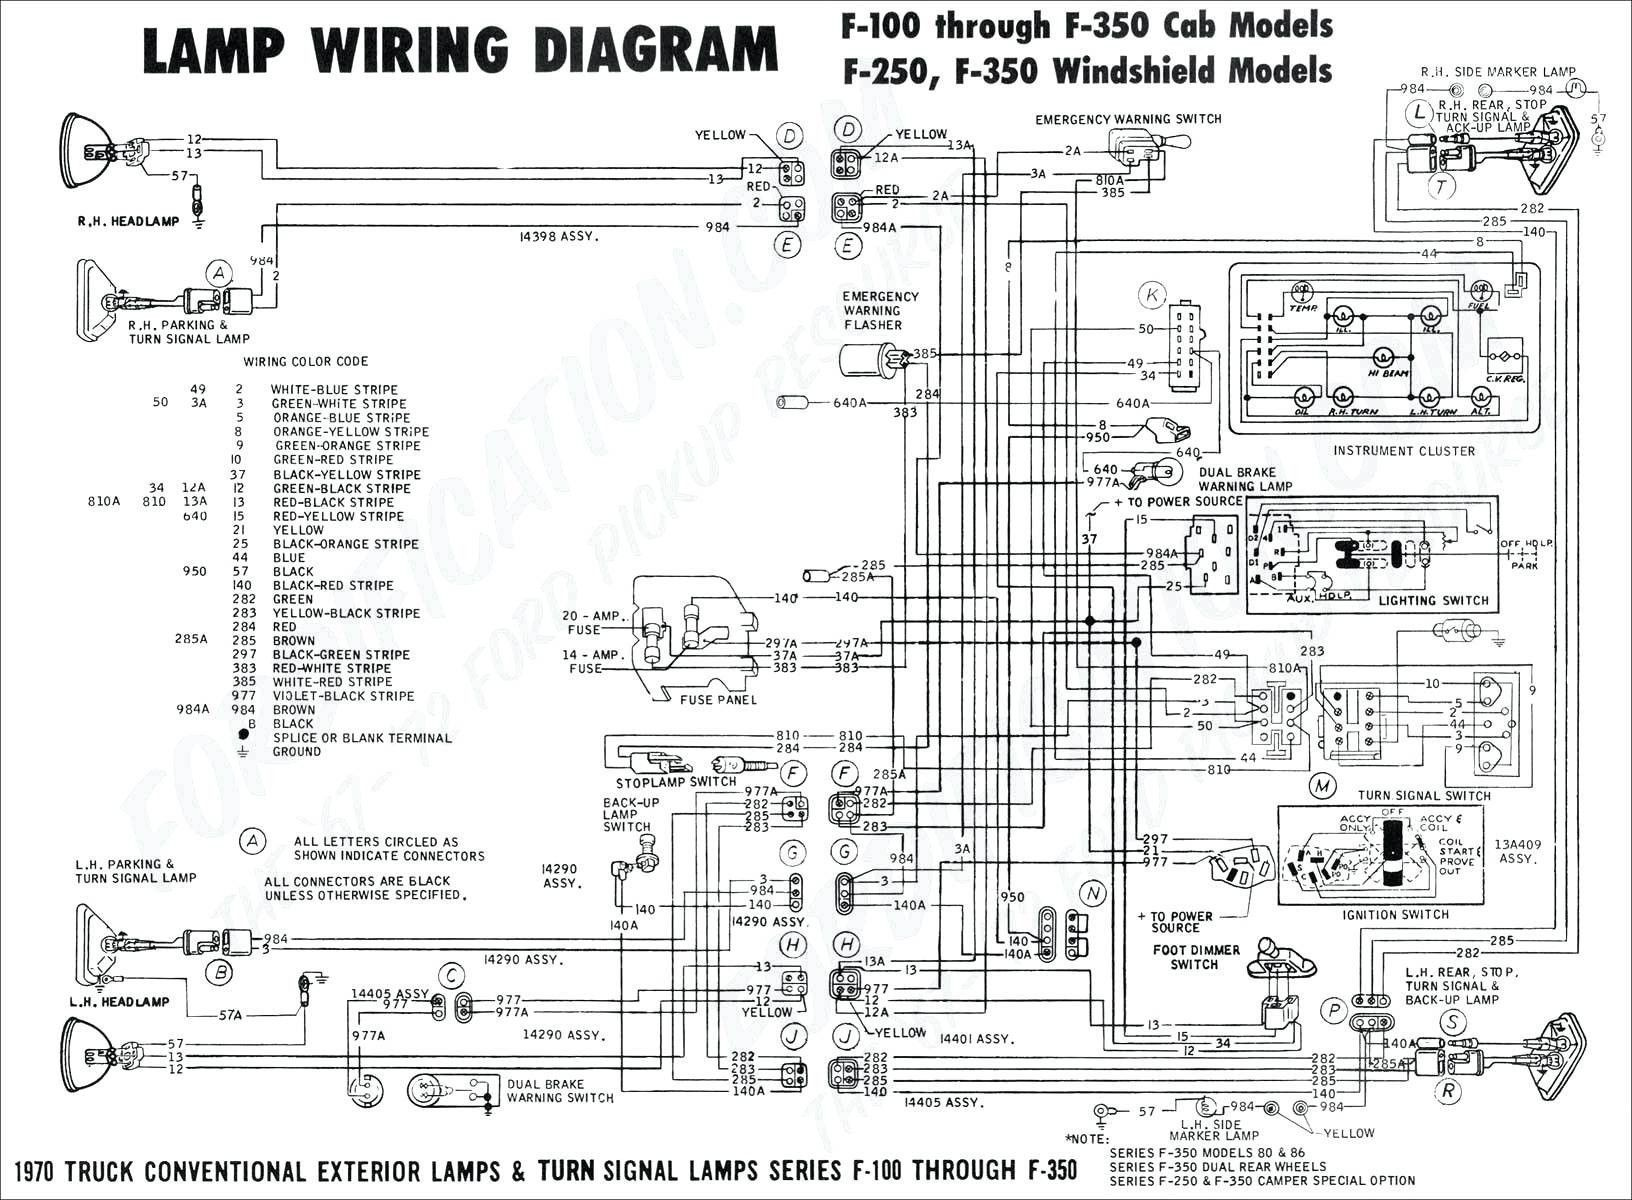 Boss Bv9386nv Wiring Diagram For 2006 Toyota Rav4 - Wiring Database  Rotation harsh-concentrate - harsh-concentrate.ciaodiscotecaitaliana.itharsh-concentrate.ciaodiscotecaitaliana.it